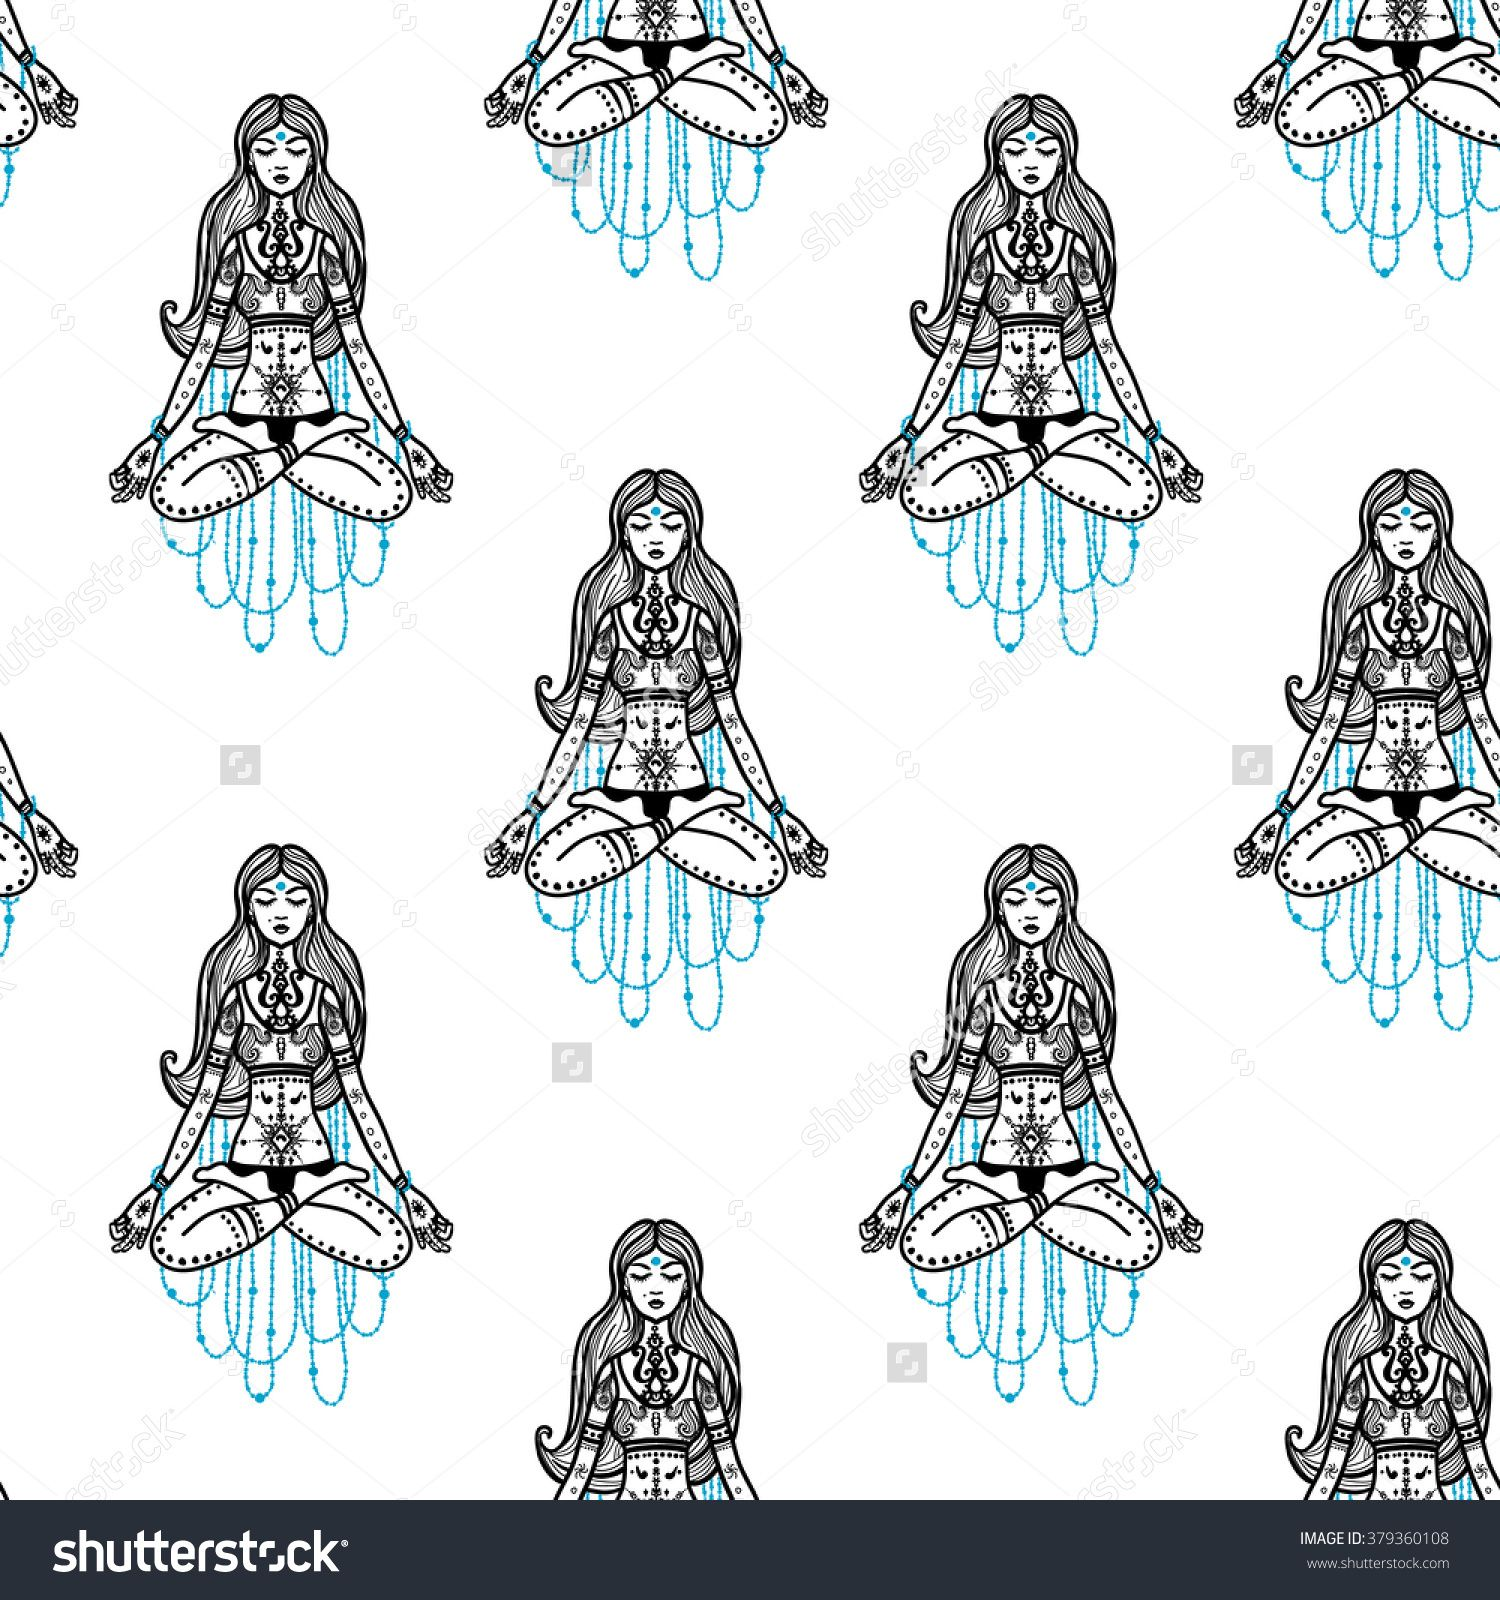 Traditional Indian Symbols: Woman. Hand Drawn Sketch Paisley And Mehendi Graphic Black Line Decoration Items On White Background. Seamless Pattern On White Backdrop Ilustración vectorial en stock 379360108 : Shutterstock